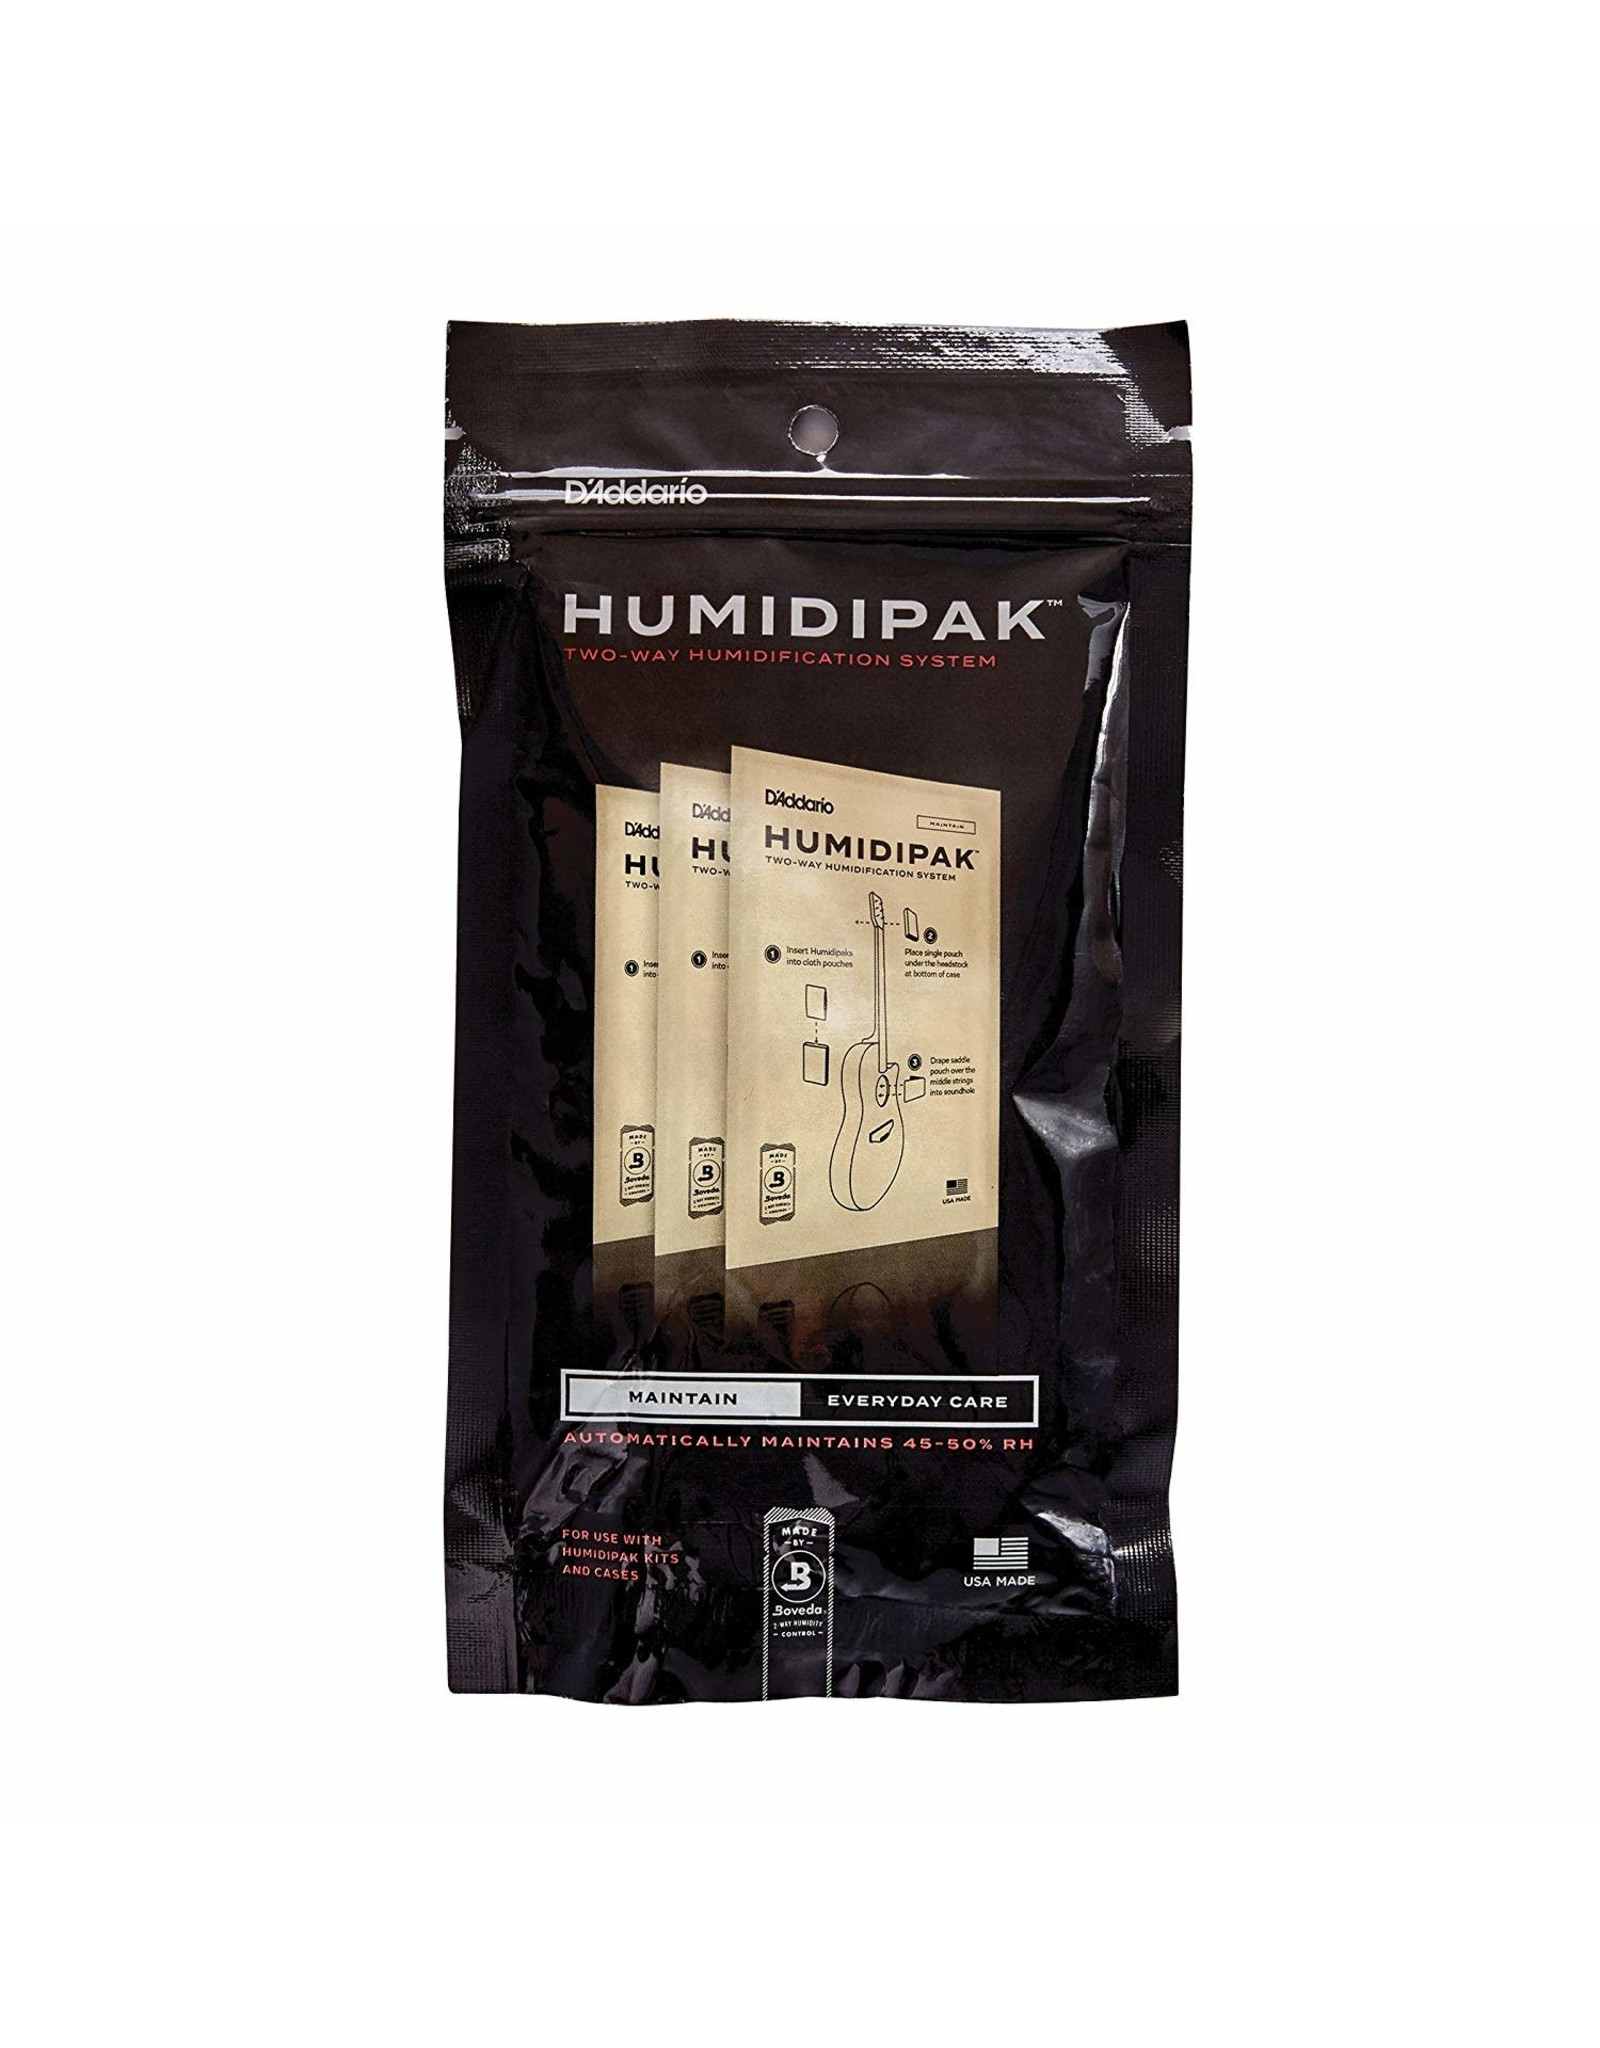 D'Addario D'Addario Humidipak System Replacement Packets, 3-pack